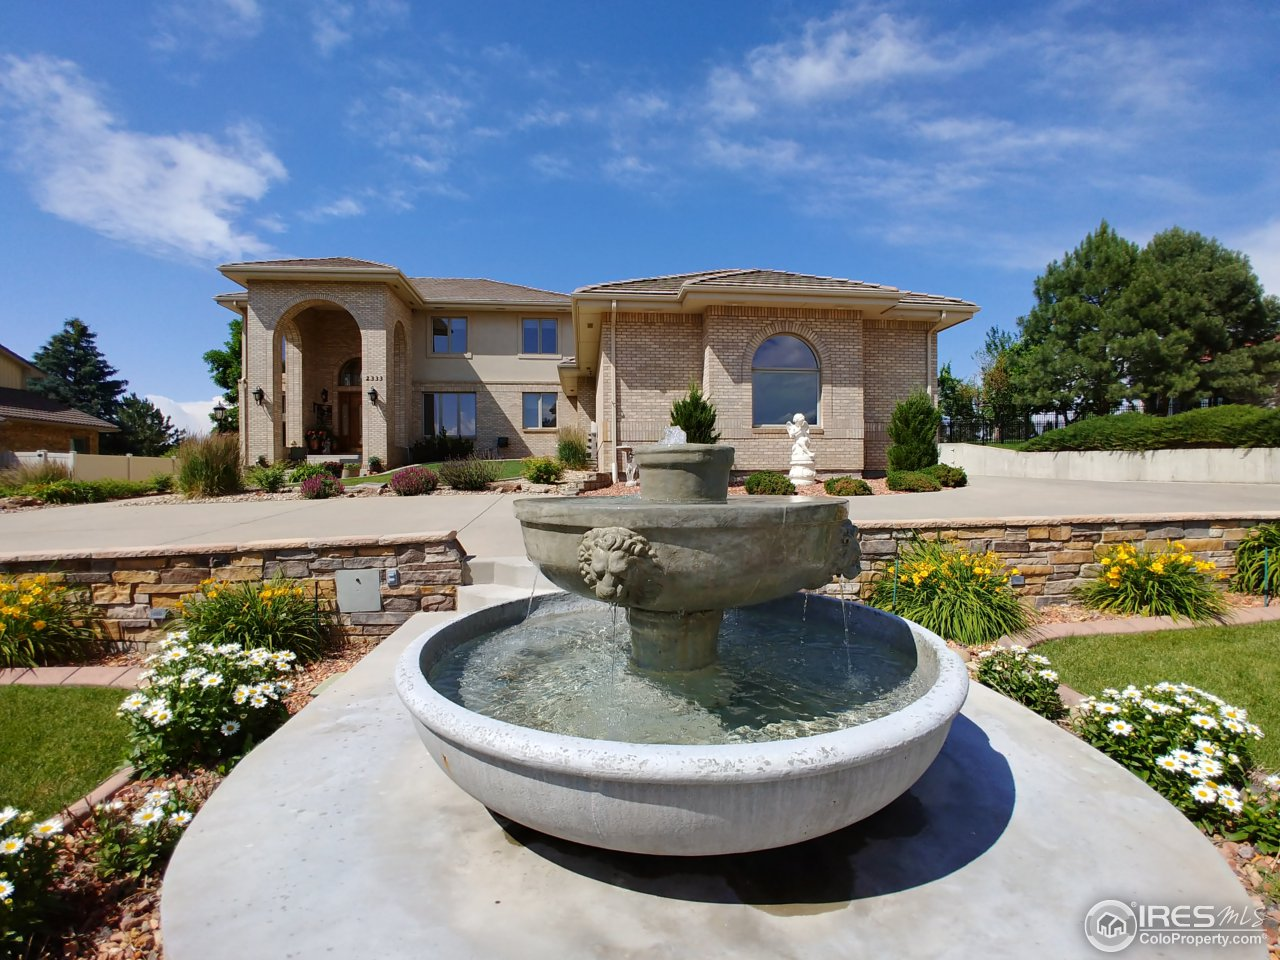 Front yard w/circular drive & 2 water features.